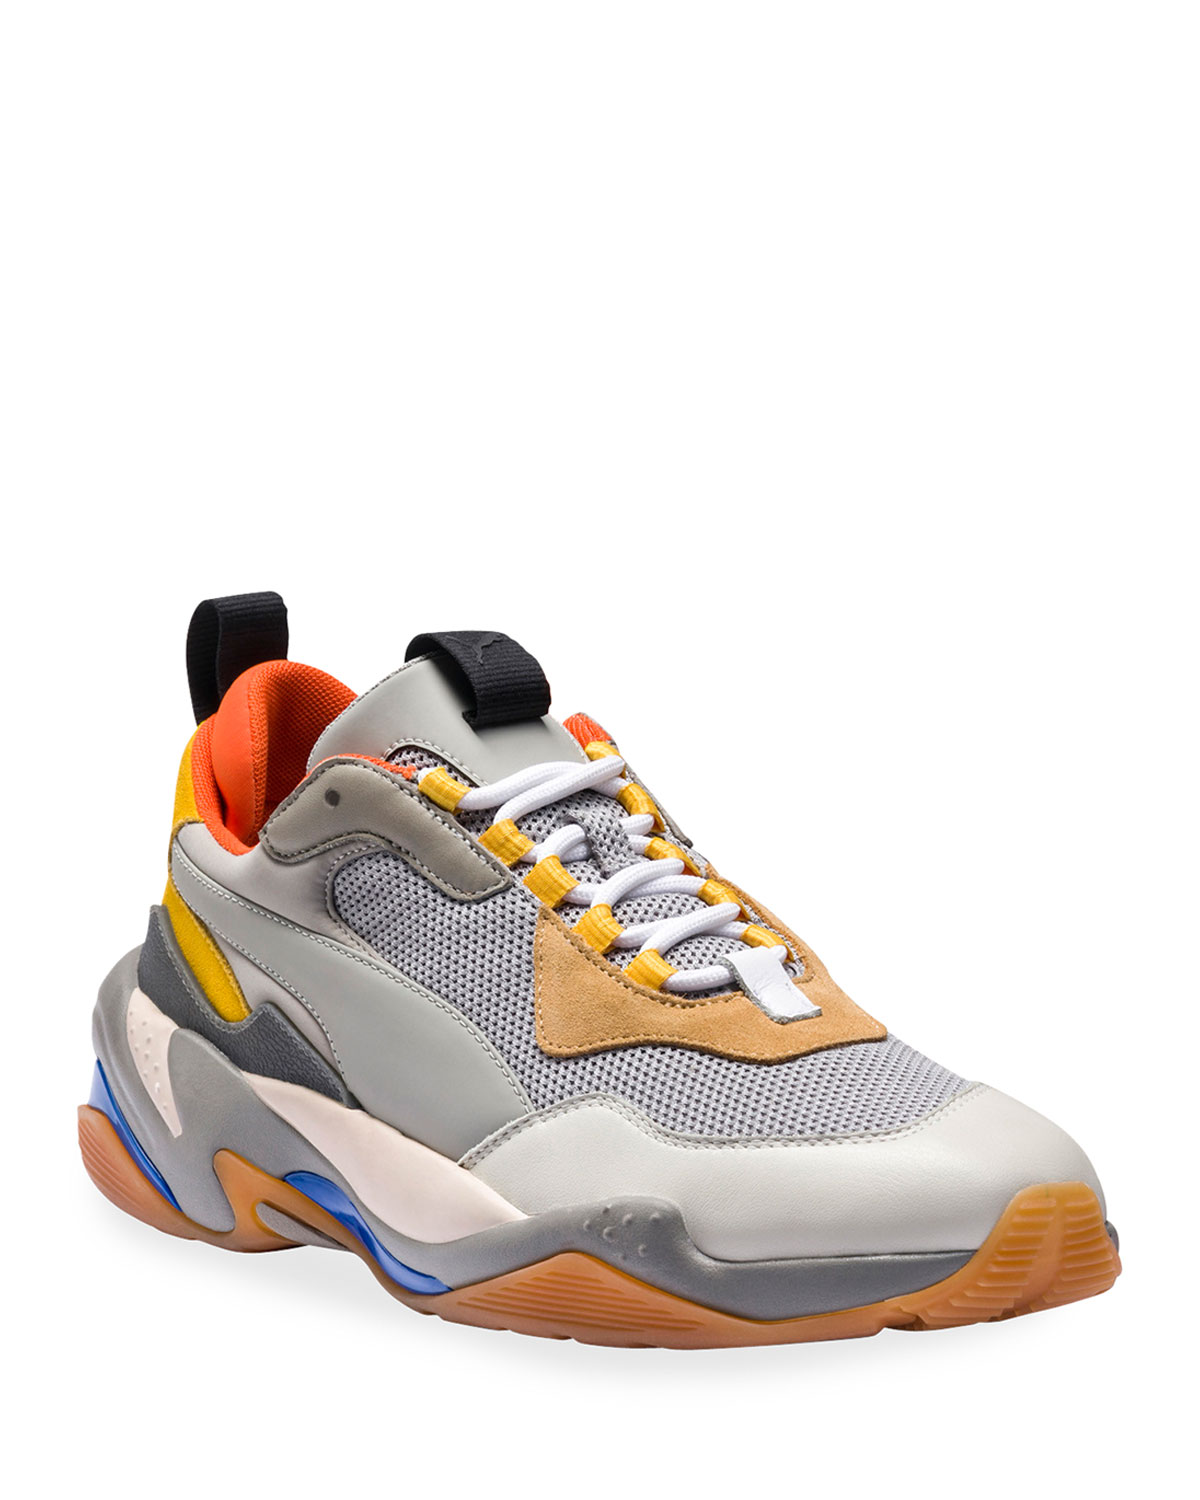 competitive price c7d66 85047 Puma Men s Thunder Spectra Leather Trainer Sneakers, ...